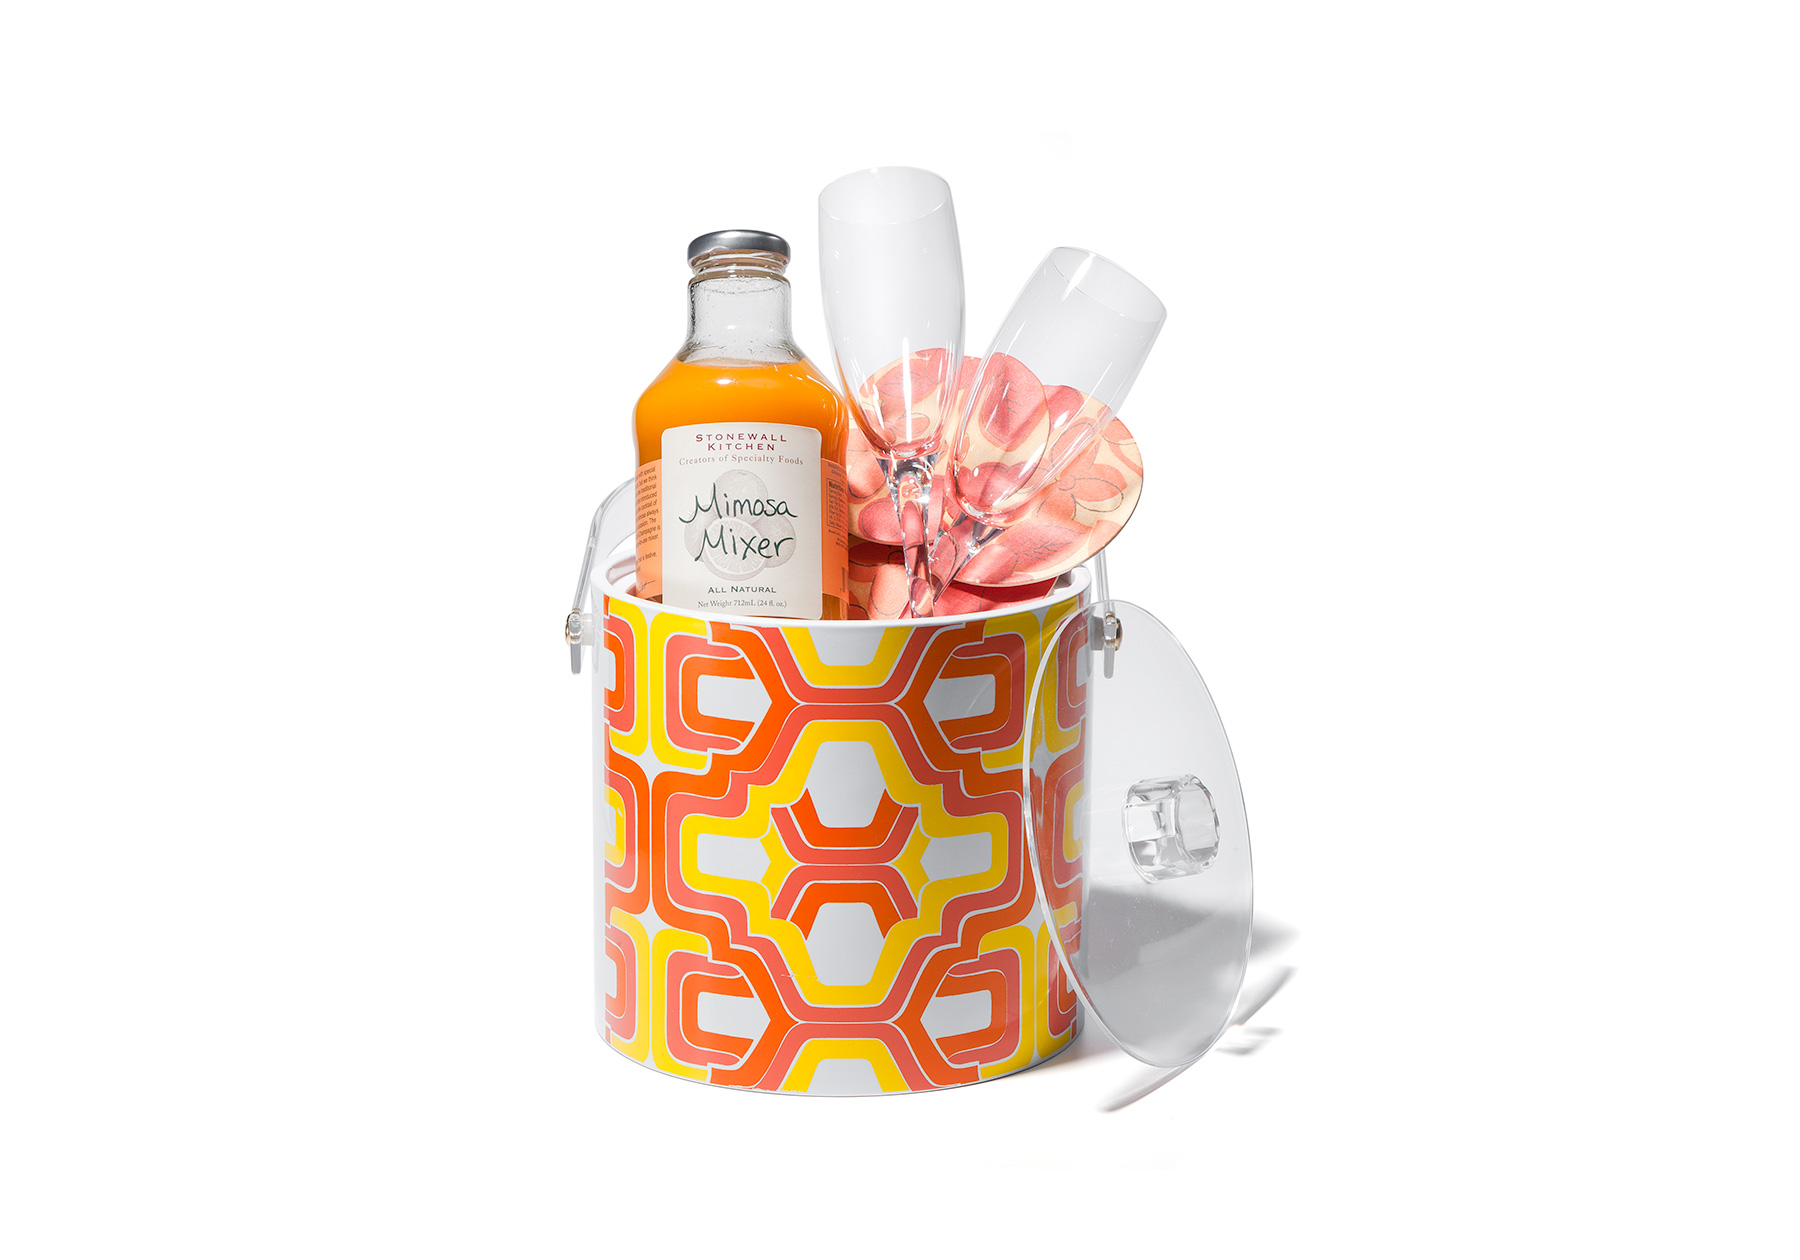 Festive ice box gift basket for Mother's Day